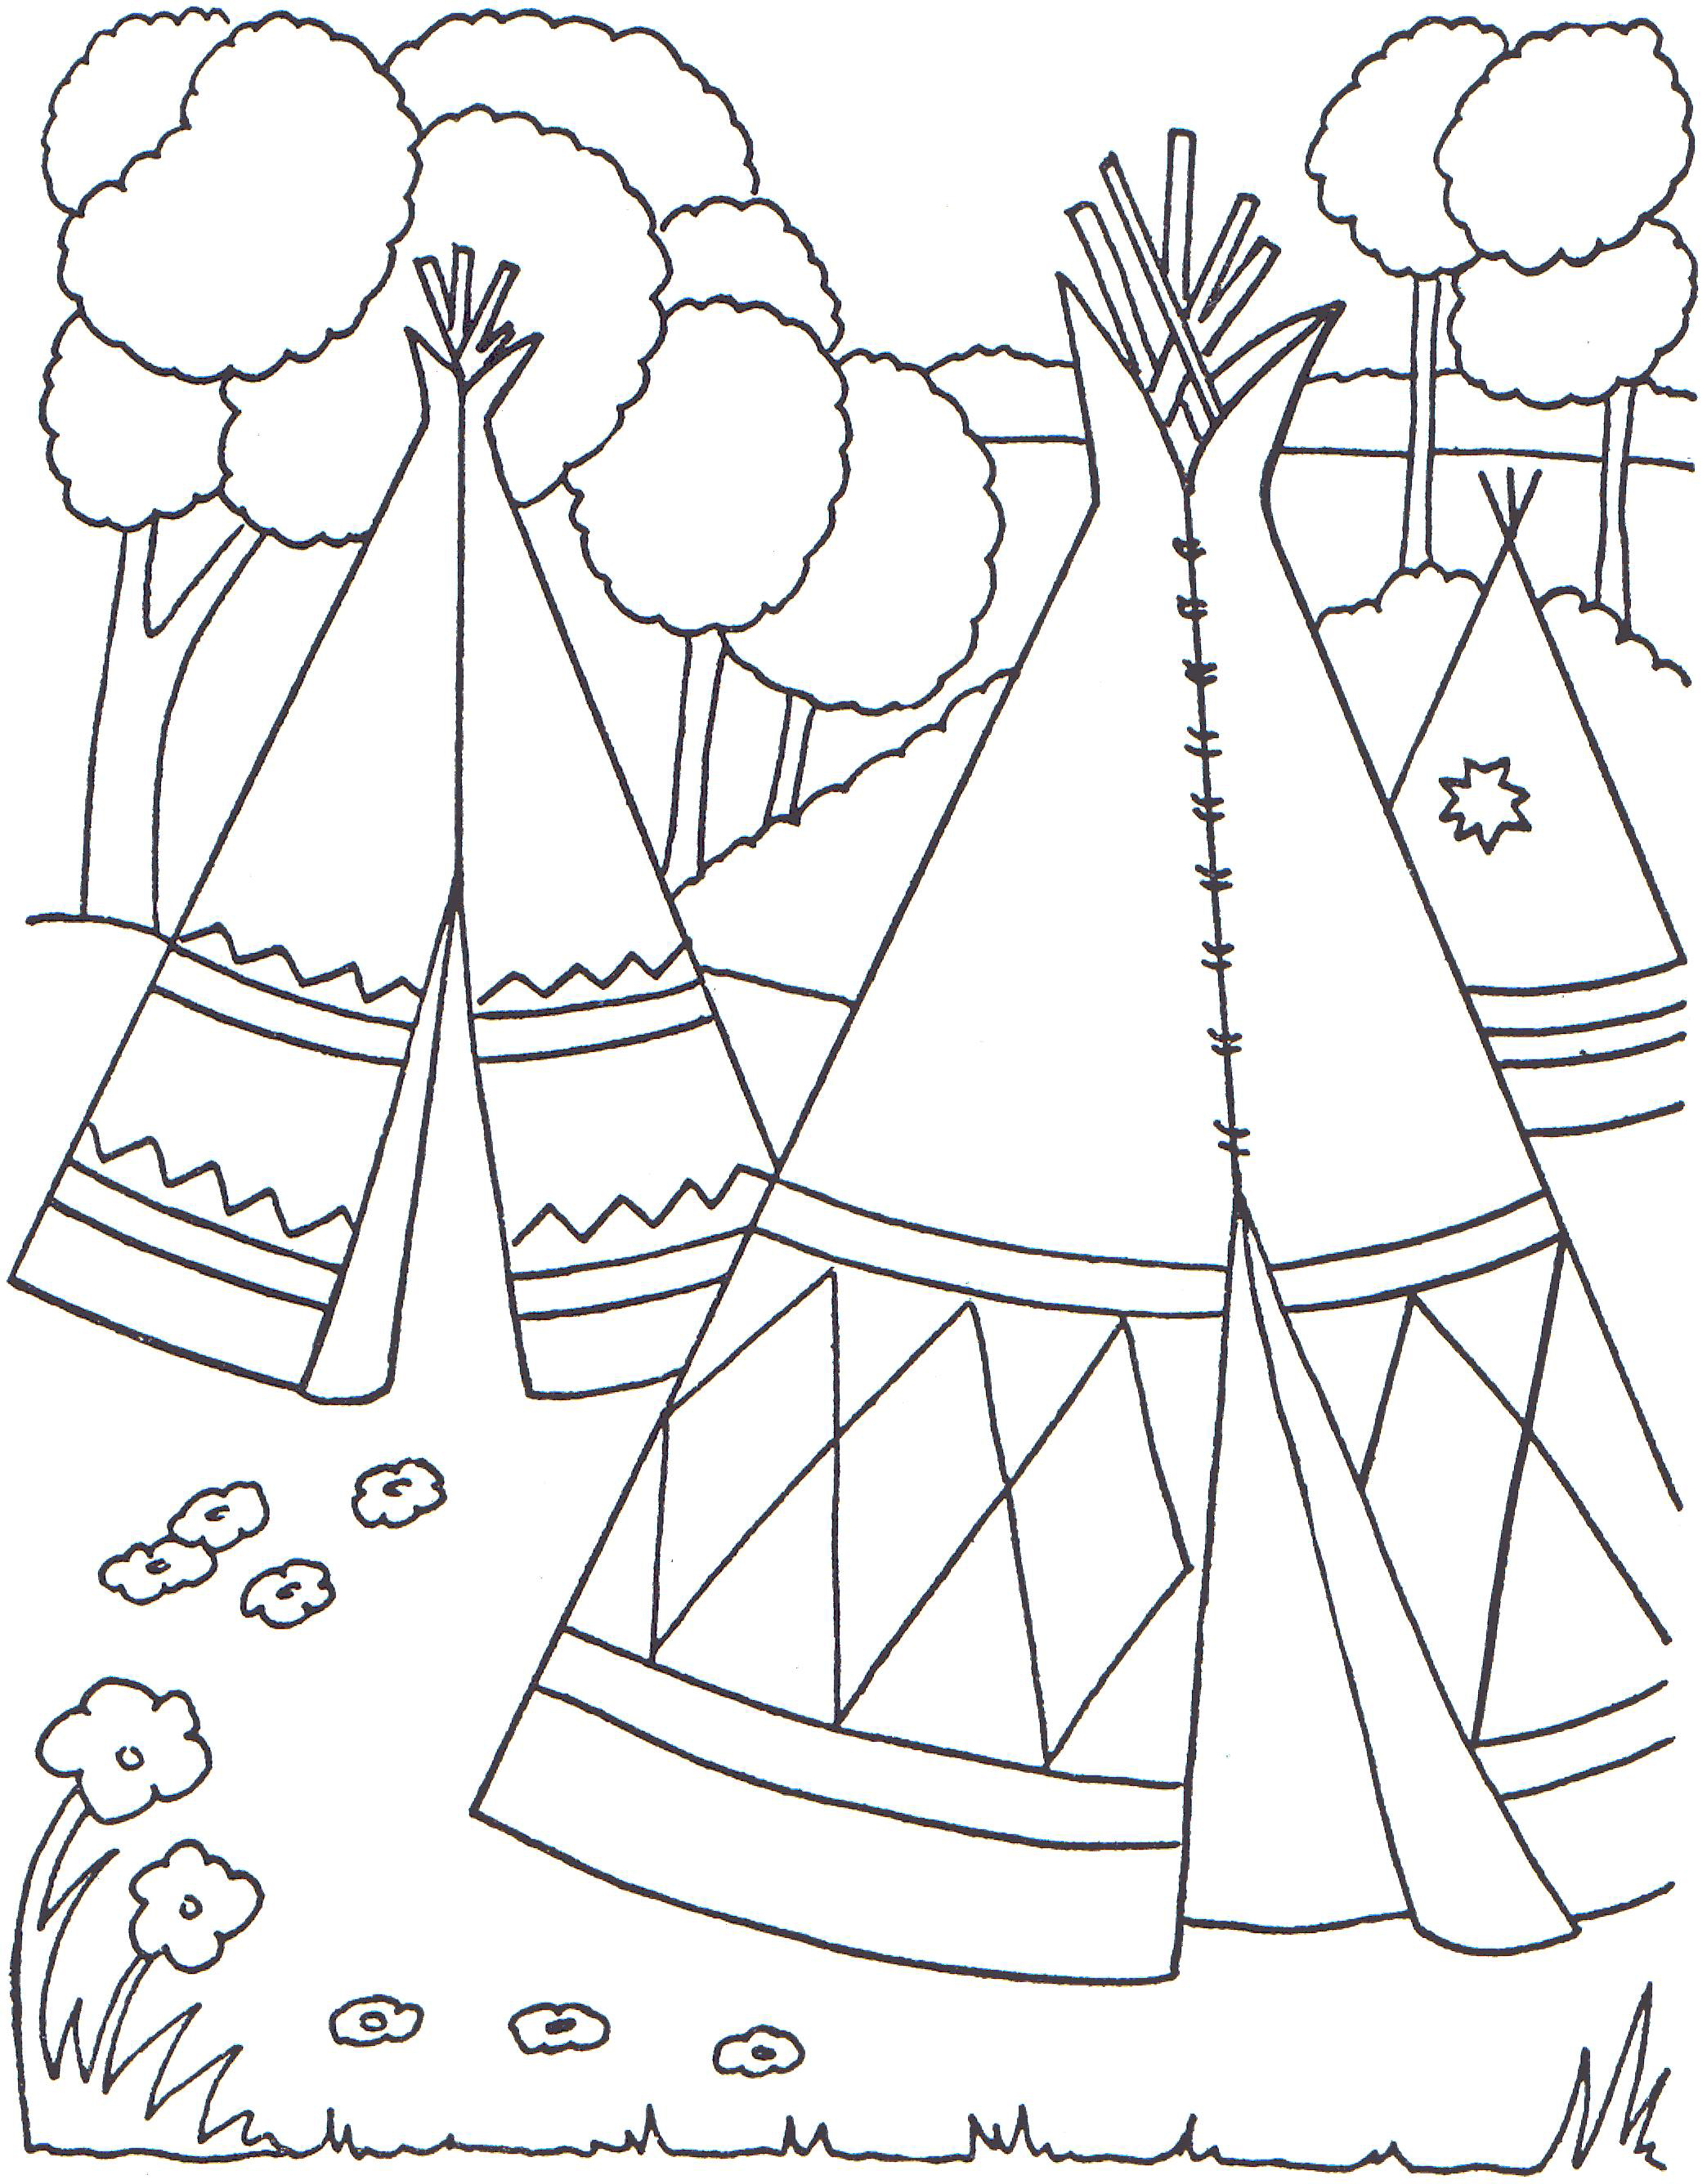 american indian kids coloring pages - photo#12